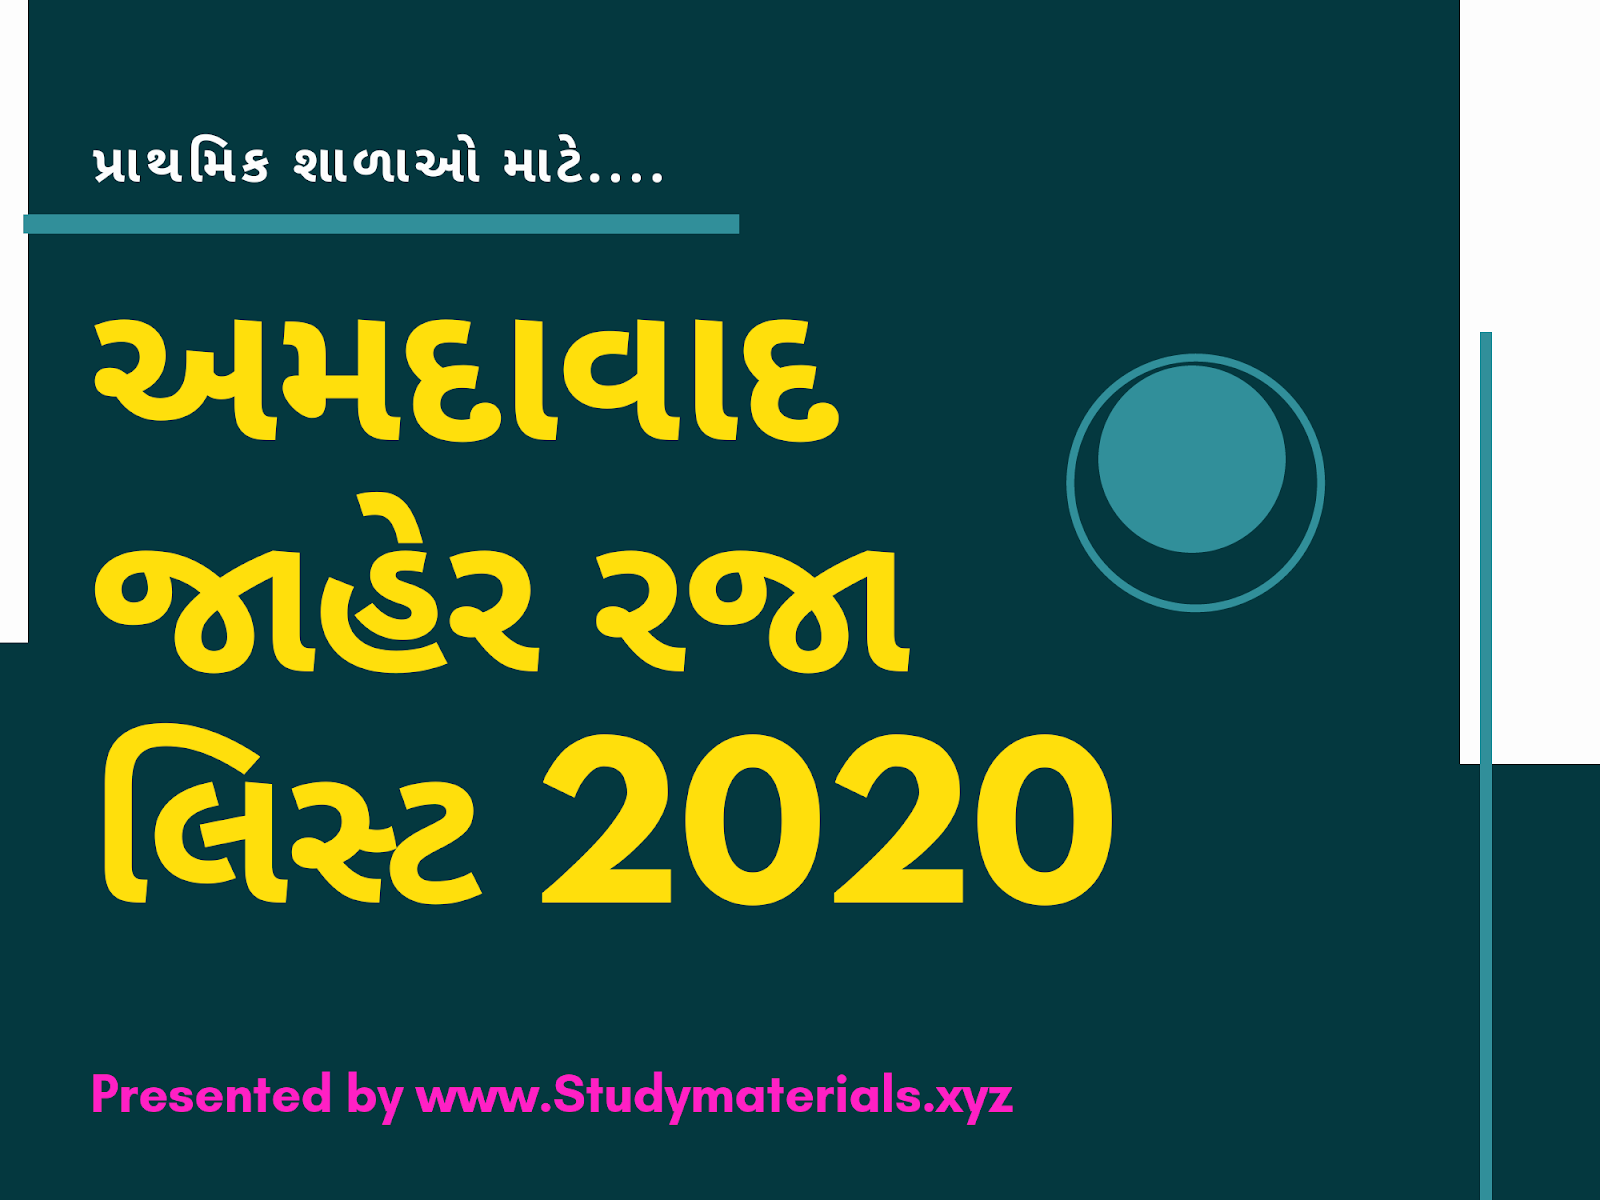 jaher raja list 2020 study materials